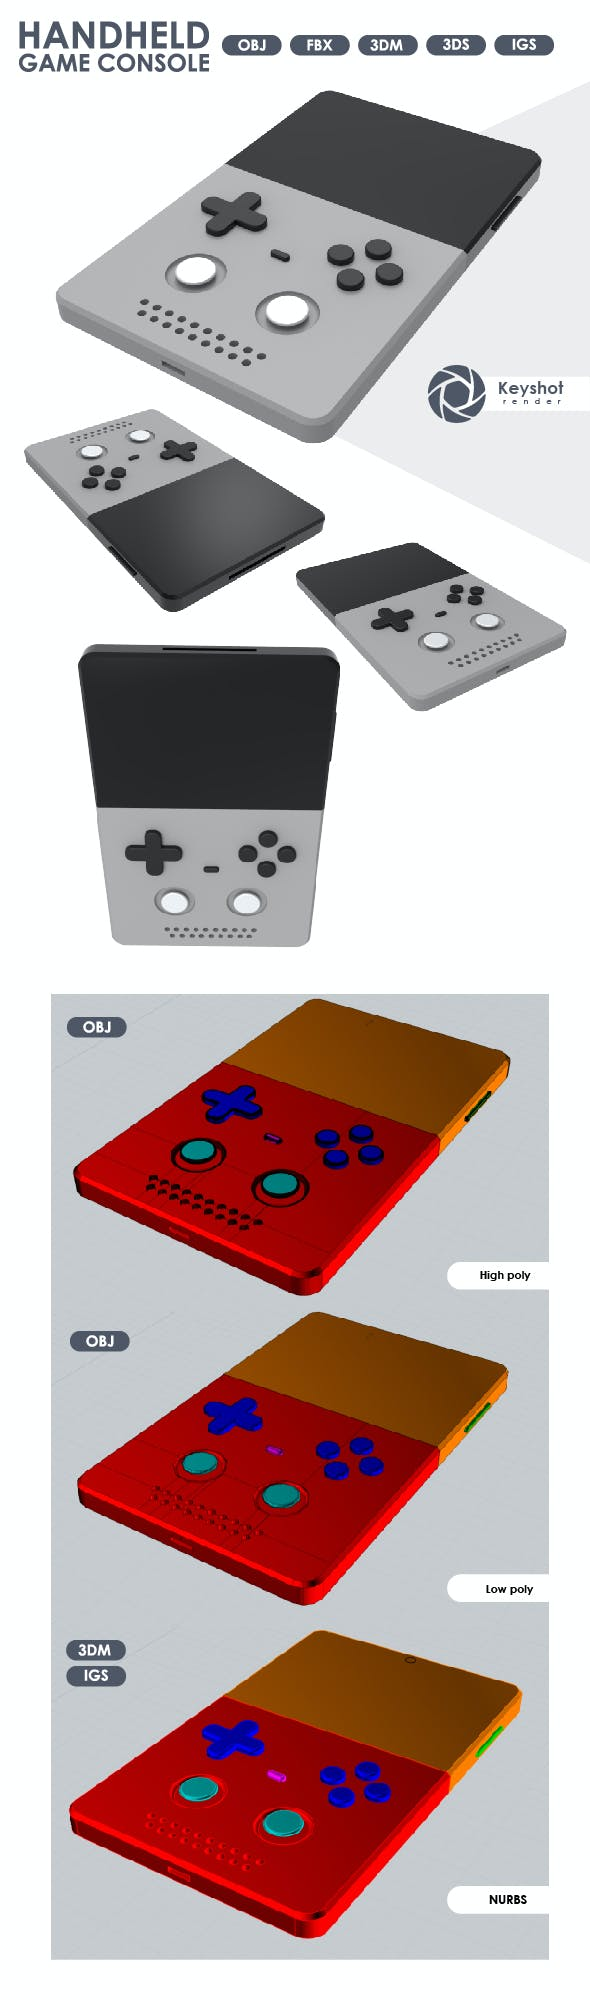 3D Model of a Handheld Console. - 3DOcean Item for Sale